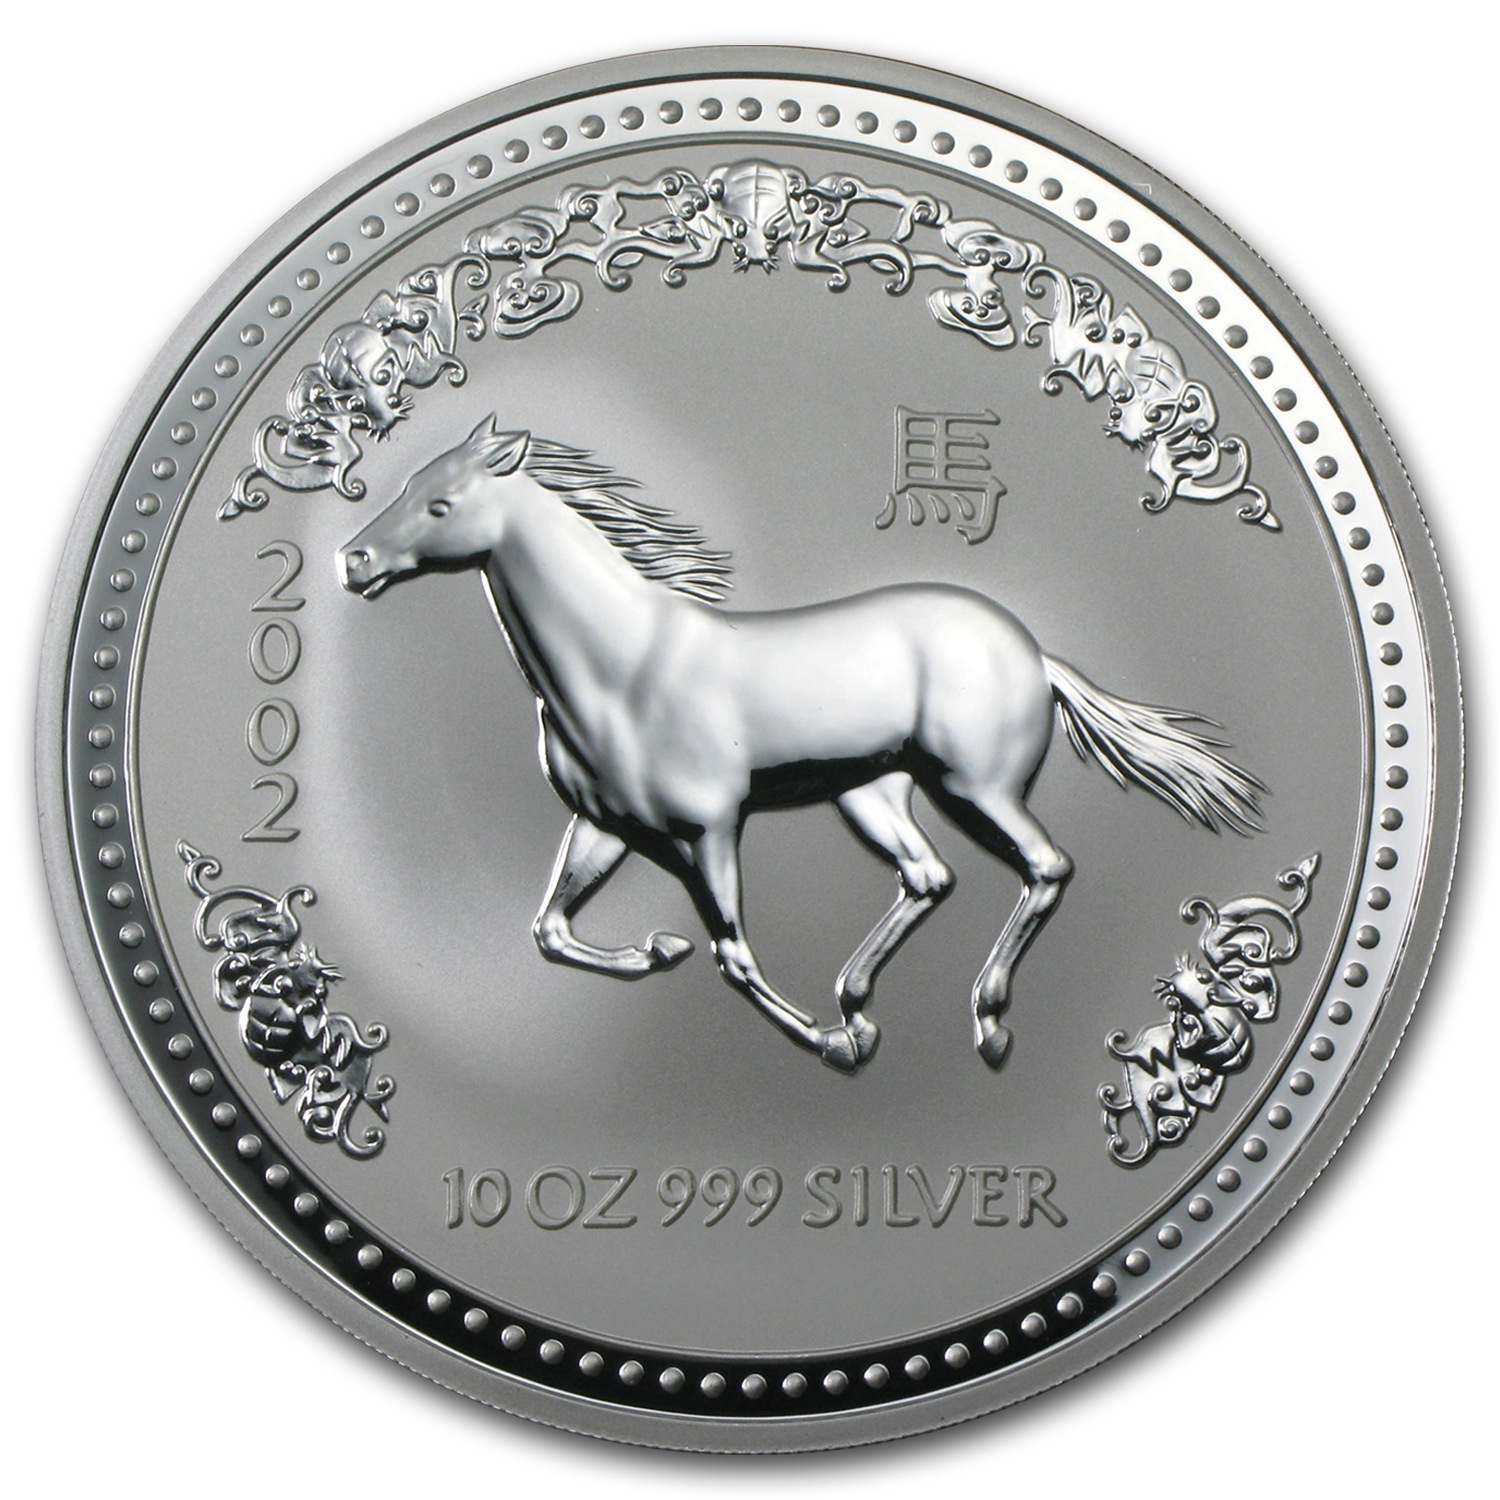 2002 10 oz Silver Australian Year of the Horse BU